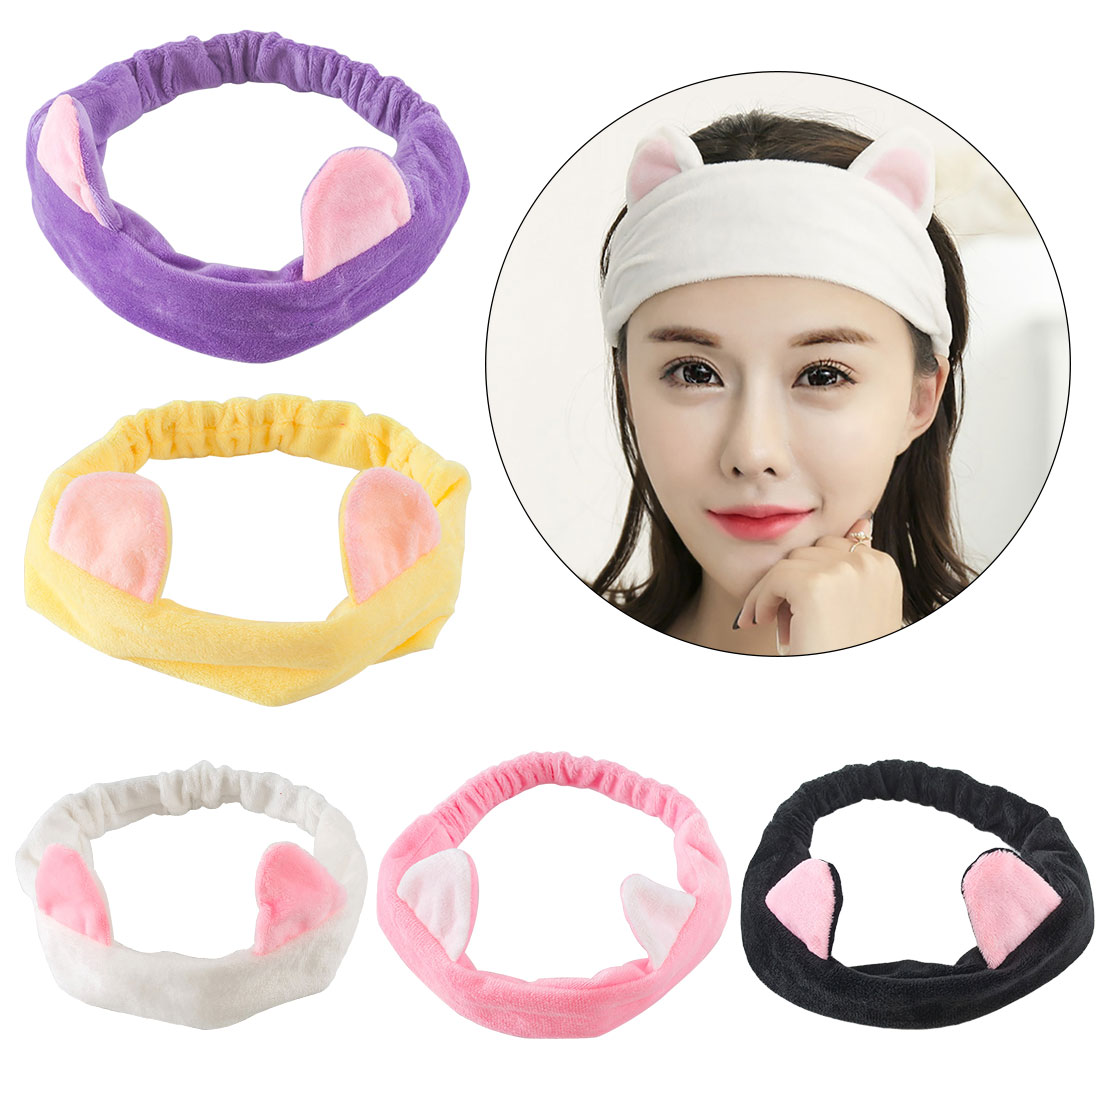 Women Ears Tools Elastic Hair Headbands Party Makeup Hairband Accessories Face Wash Headdress Cute Cat Life